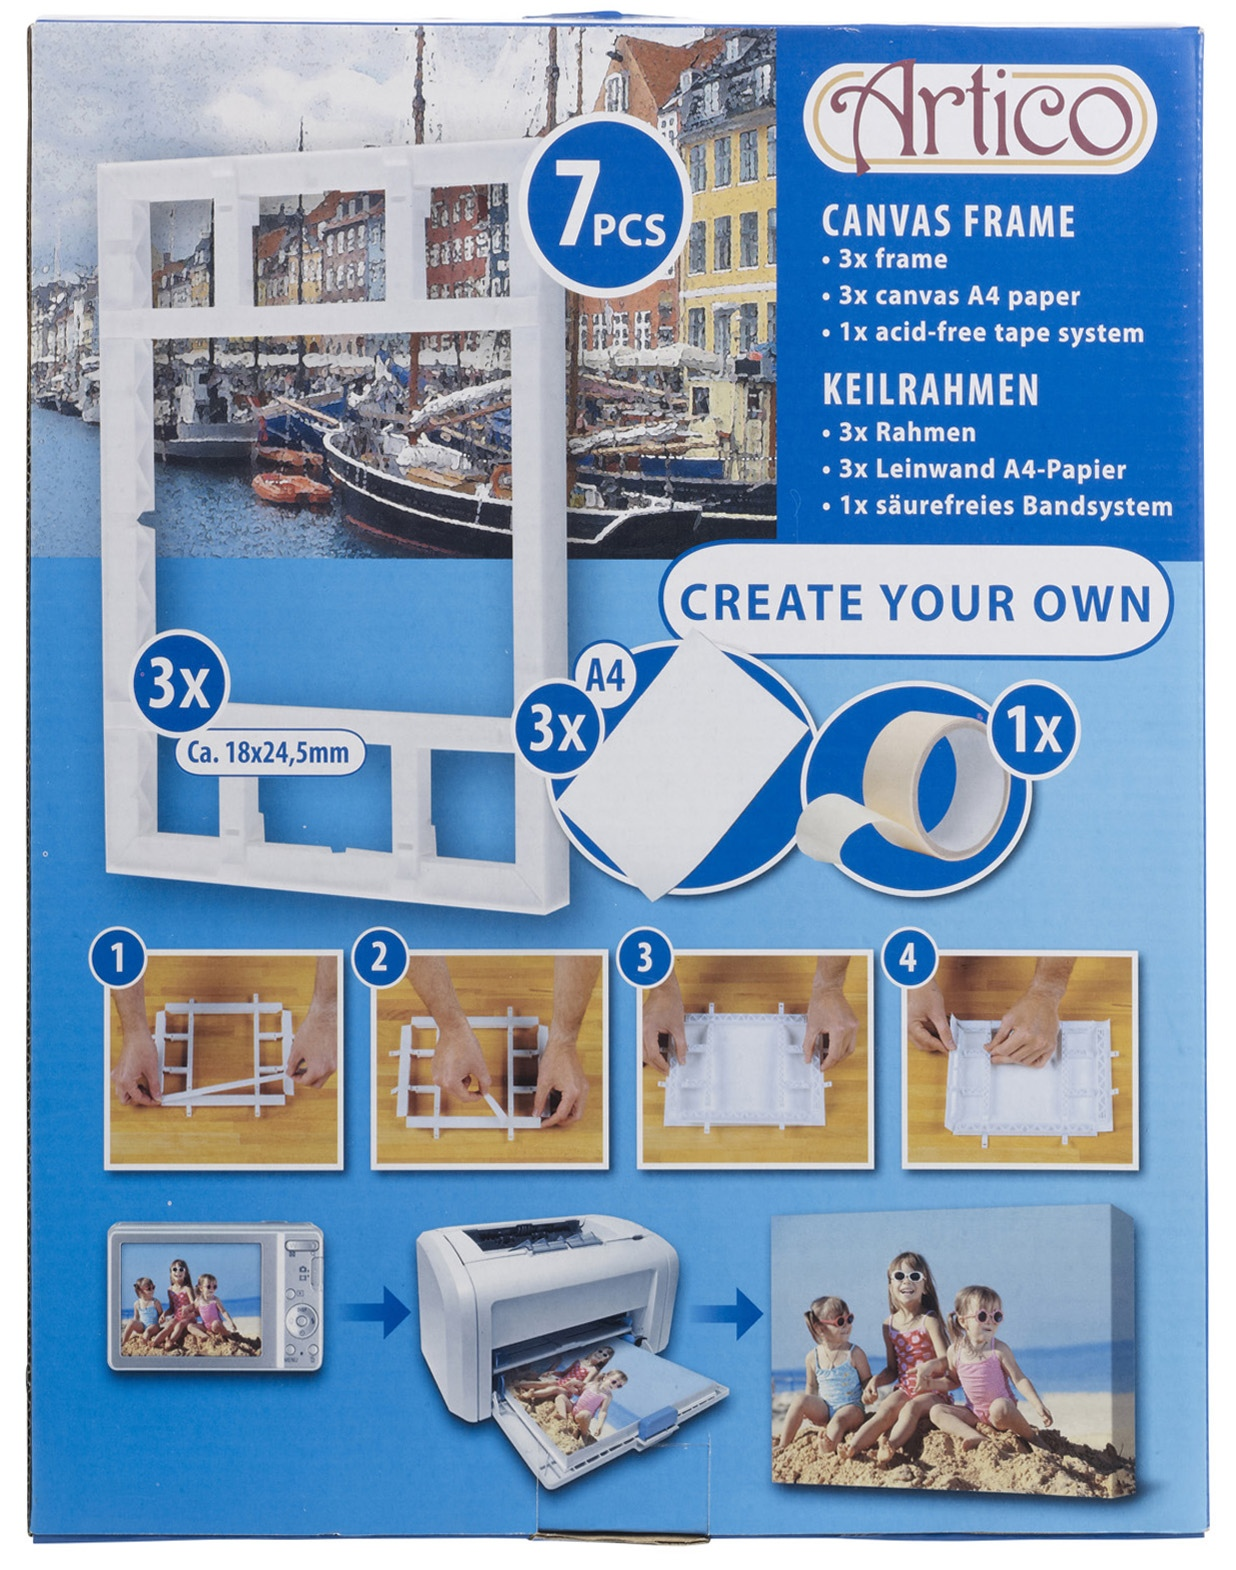 7pcs create your own a4 diy wall canvas picture frames kit tape rrp 1499 jeuxipadfo Choice Image